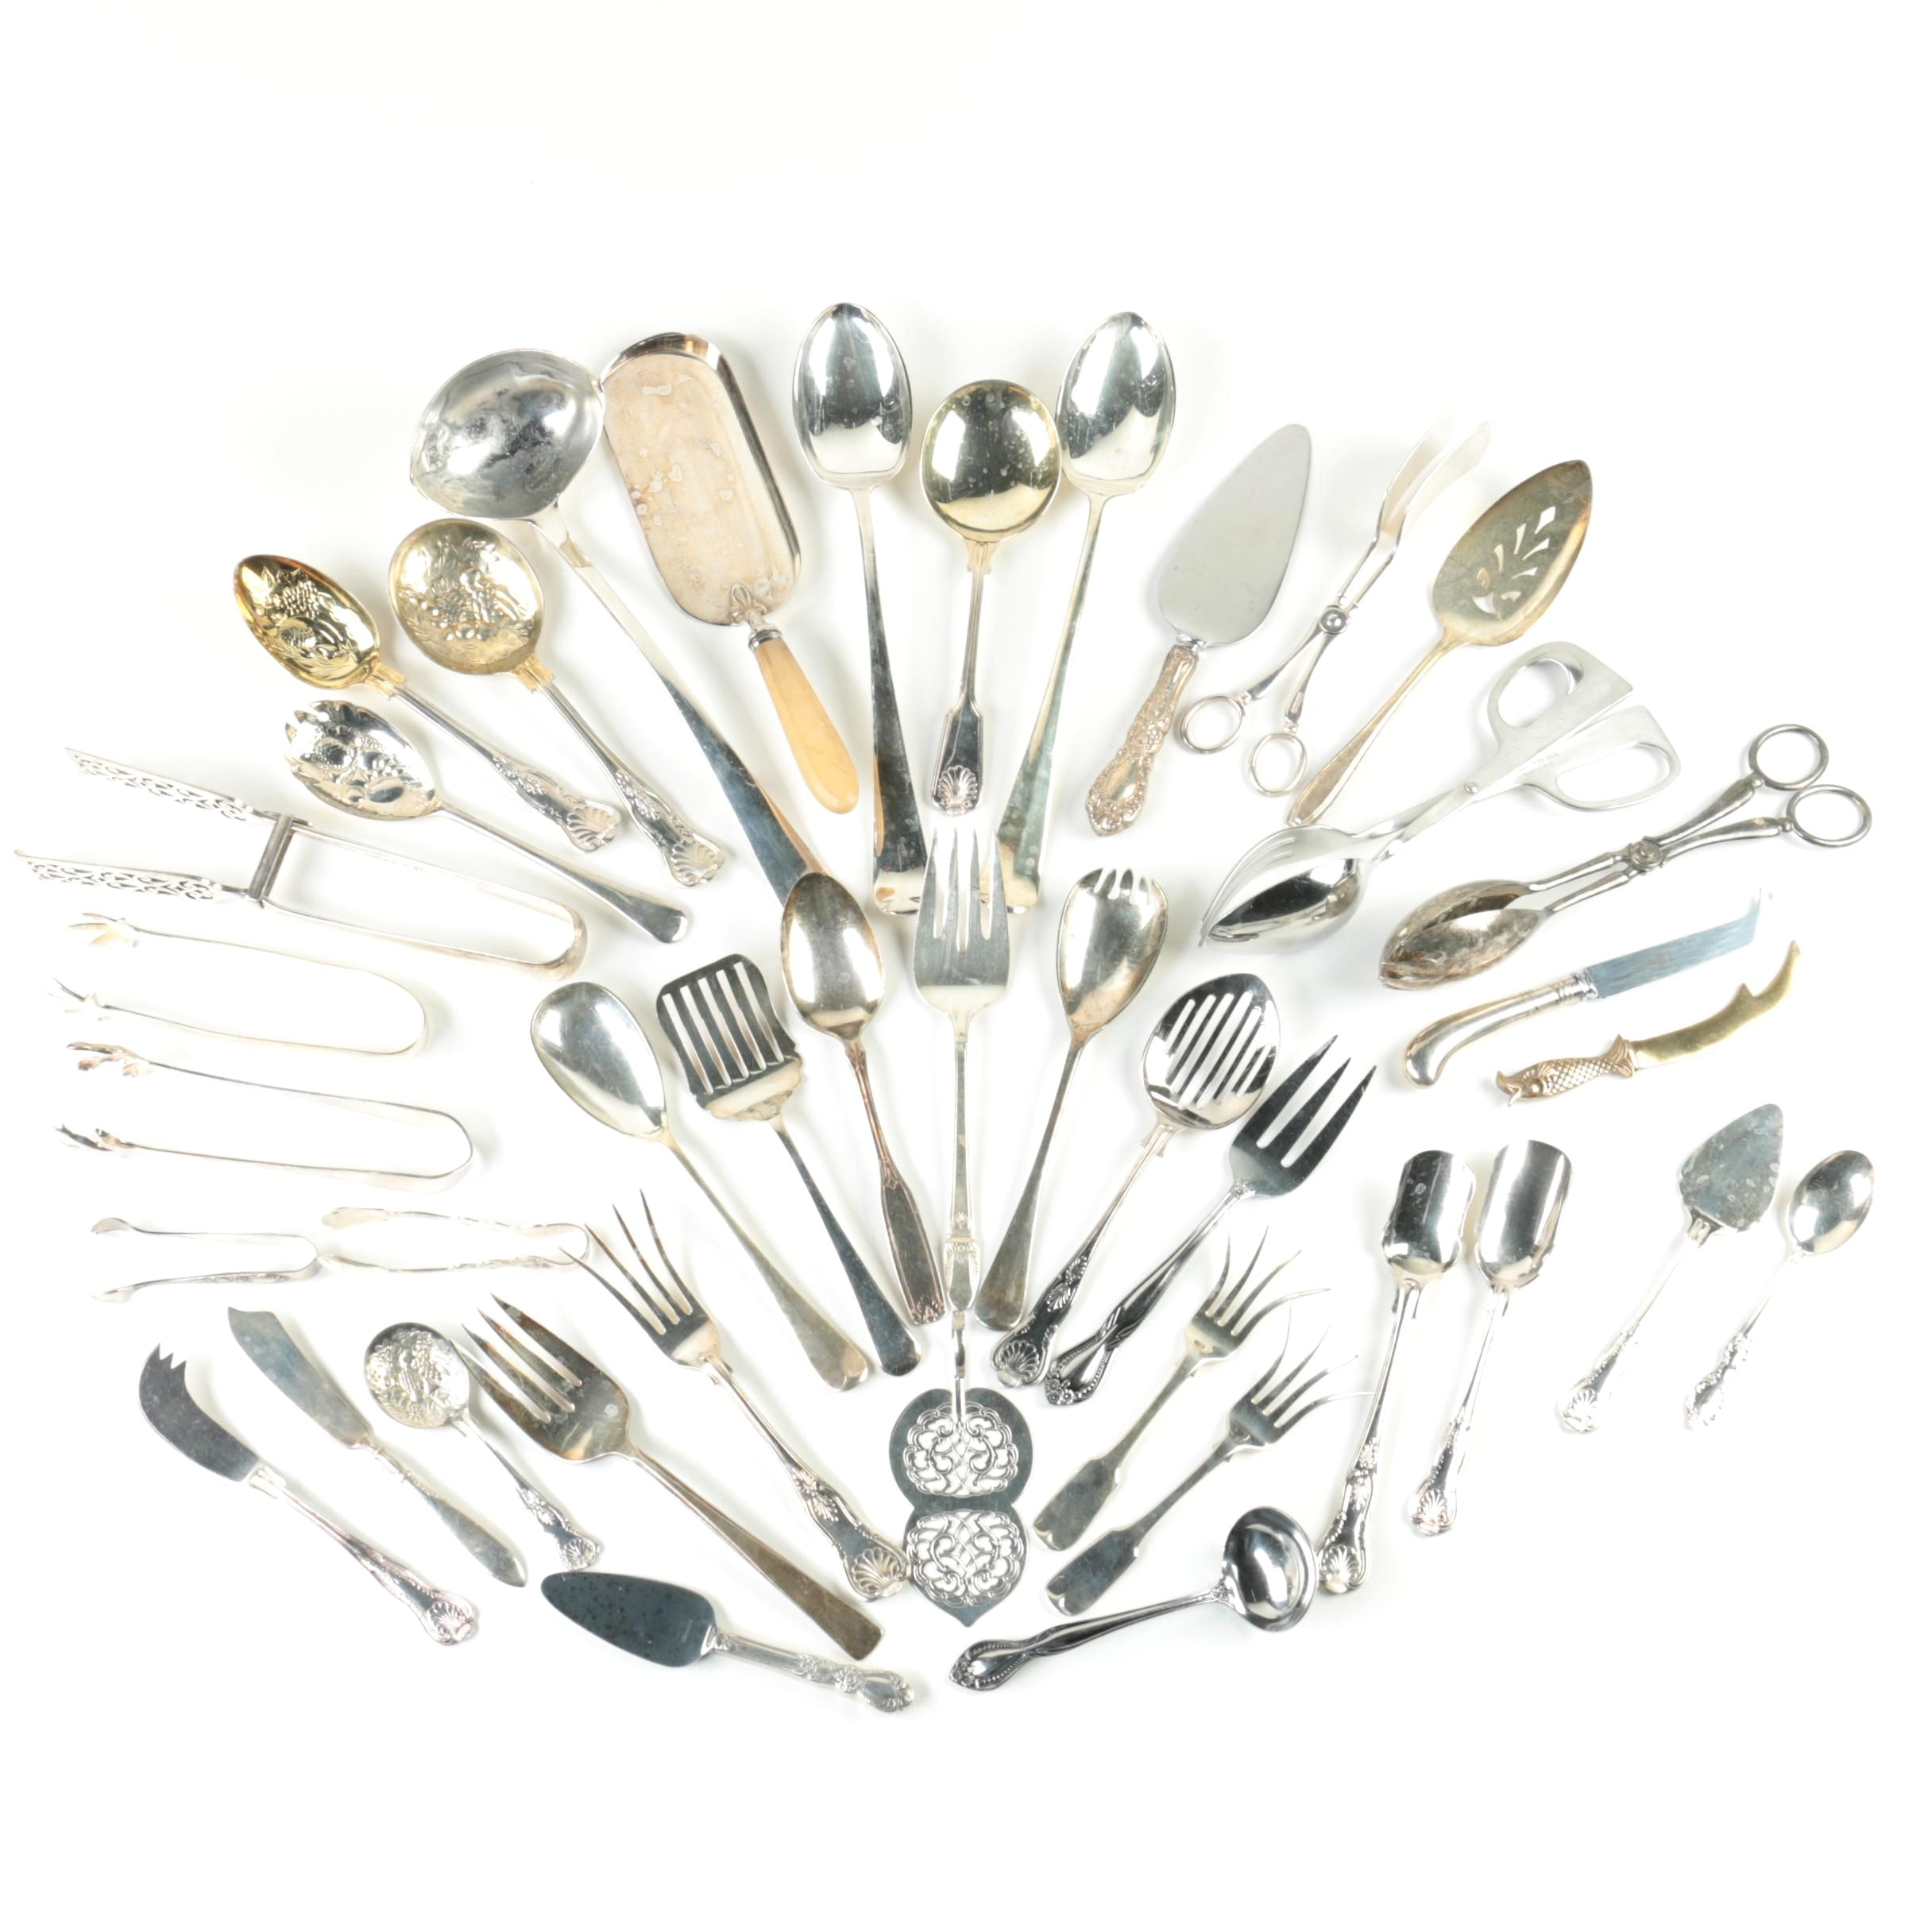 Silver Plate and Stainless Steel Serving Utensils